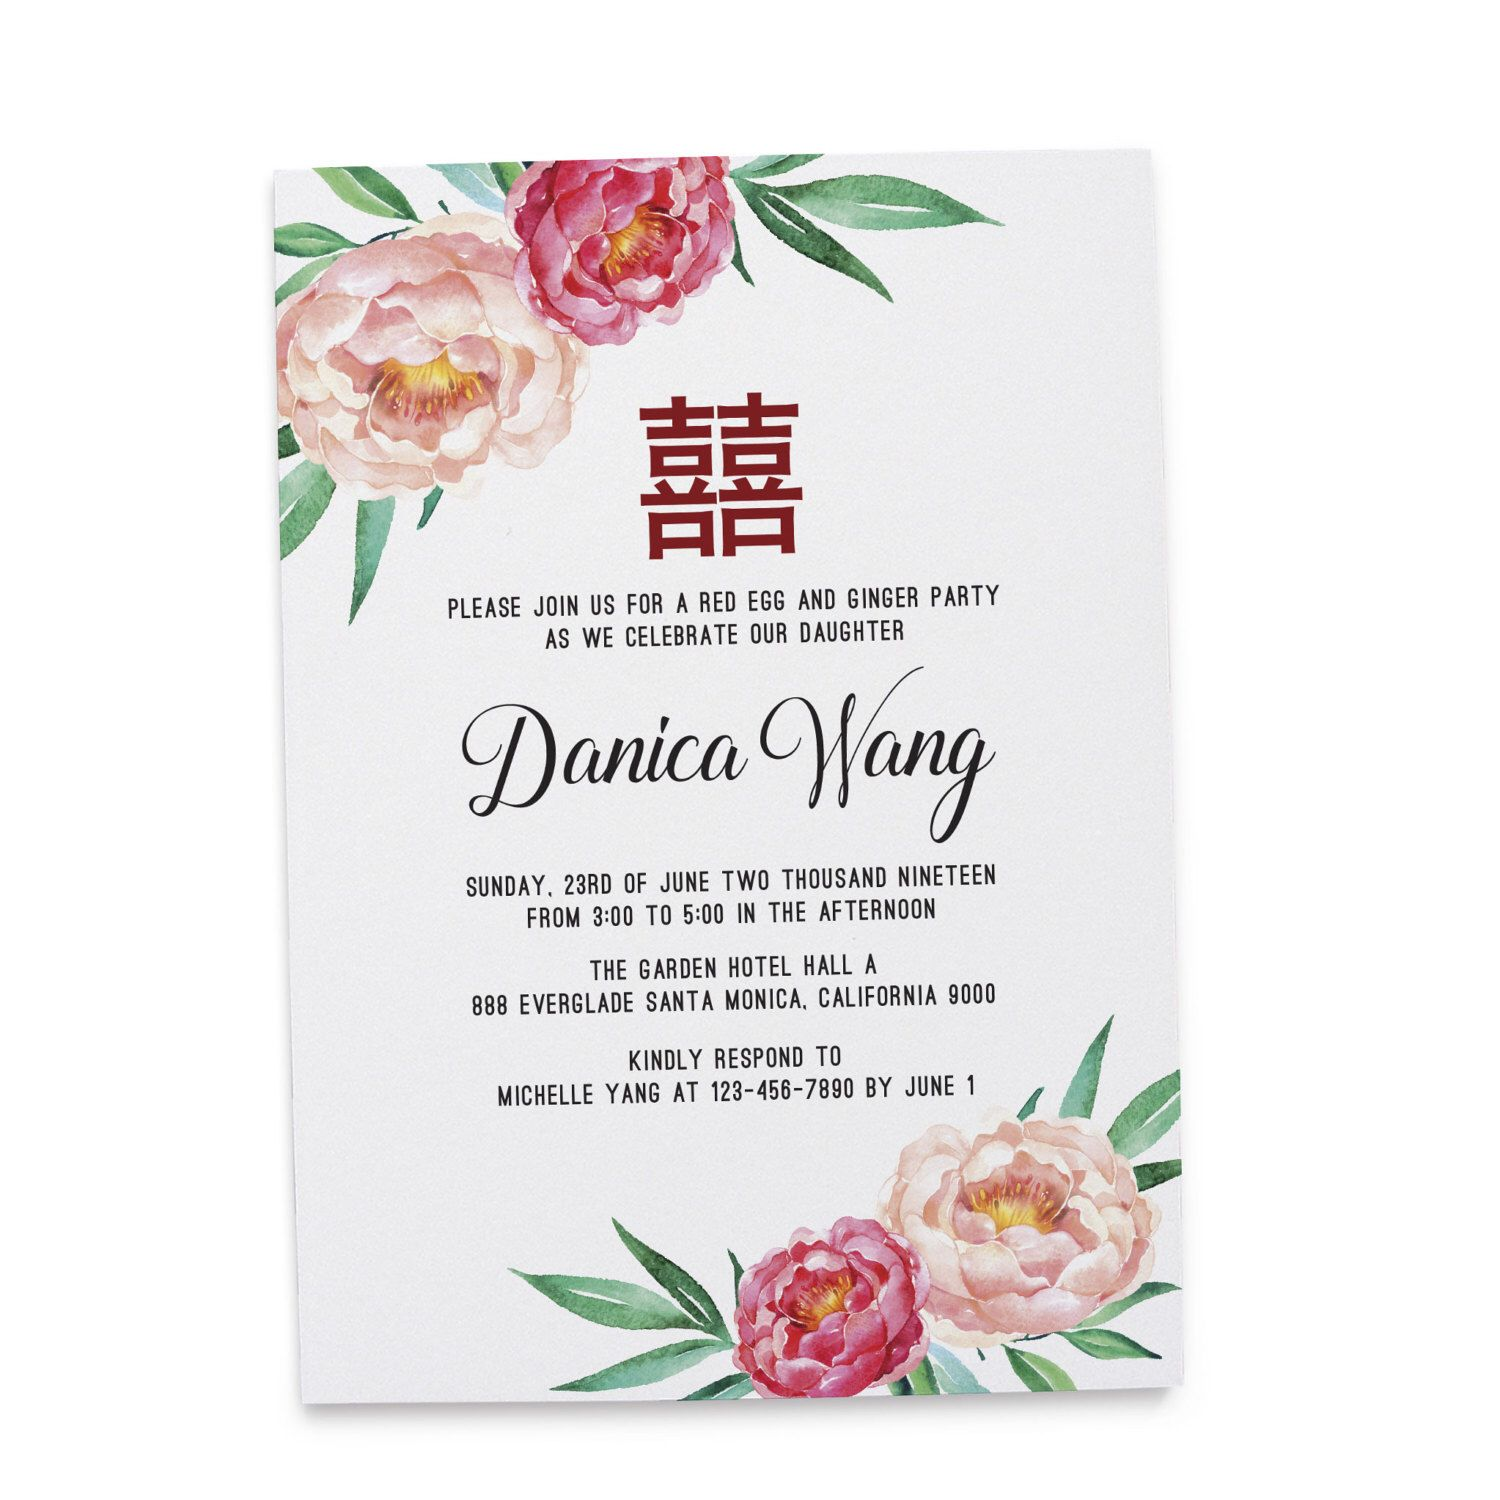 Red egg and ginger party invitation | Chinese Red Egg & Ginger ...